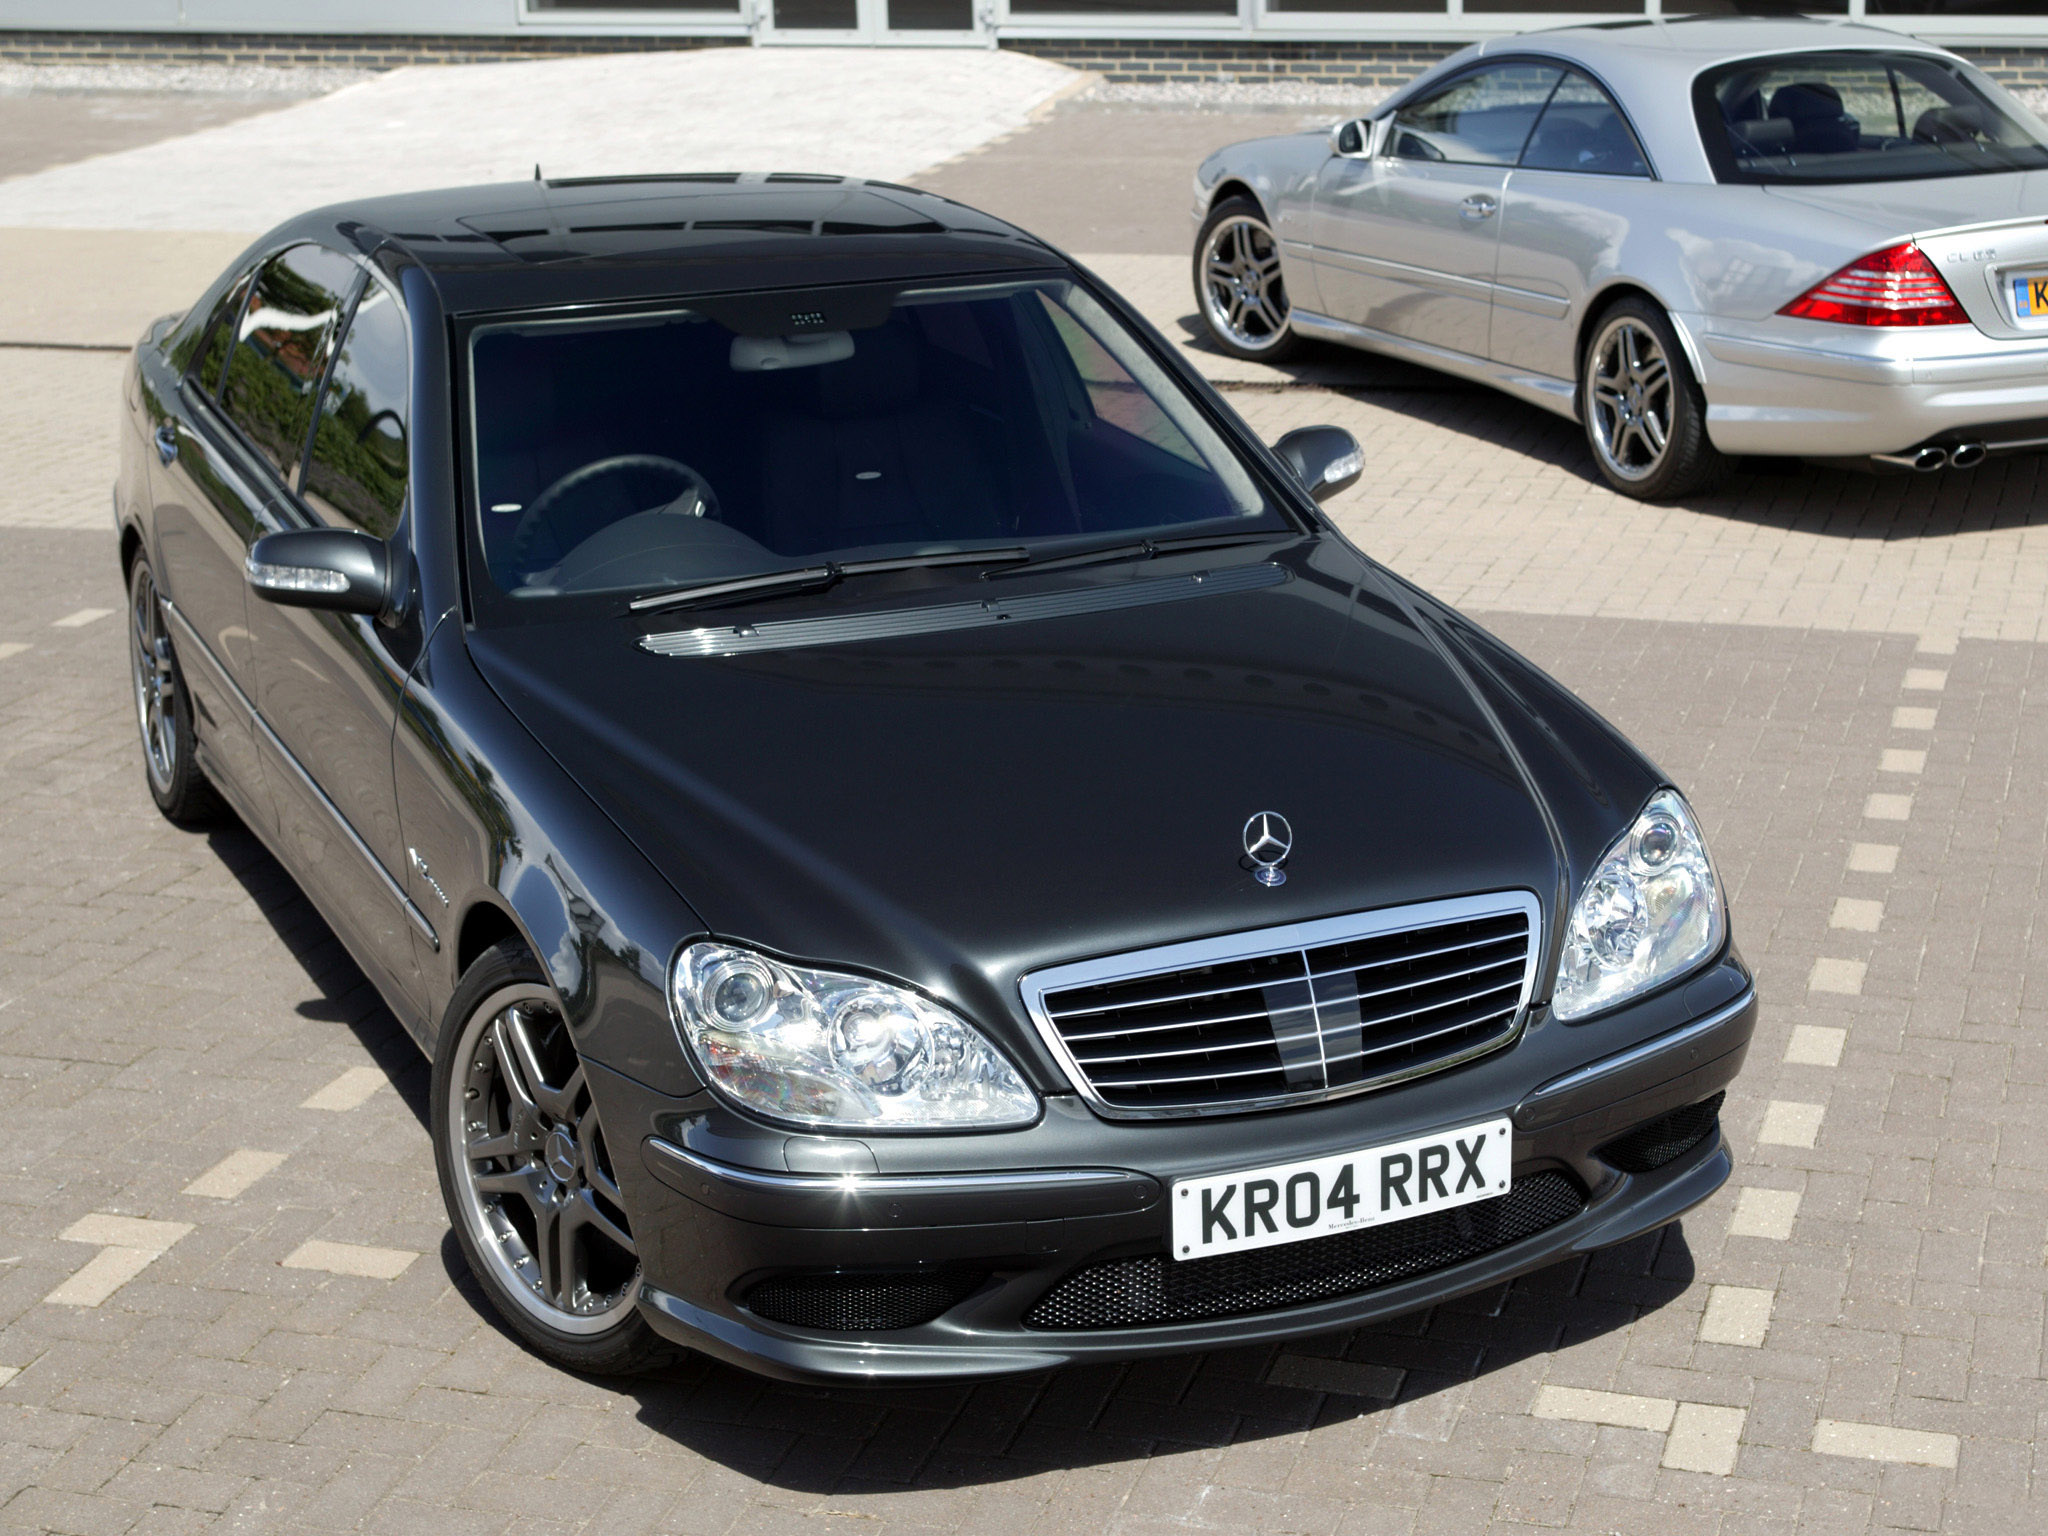 amg mercedes s klasse s65 uk w220 2004 2005 amg mercedes s klasse s65 uk w220 2004 2005 photo 04. Black Bedroom Furniture Sets. Home Design Ideas